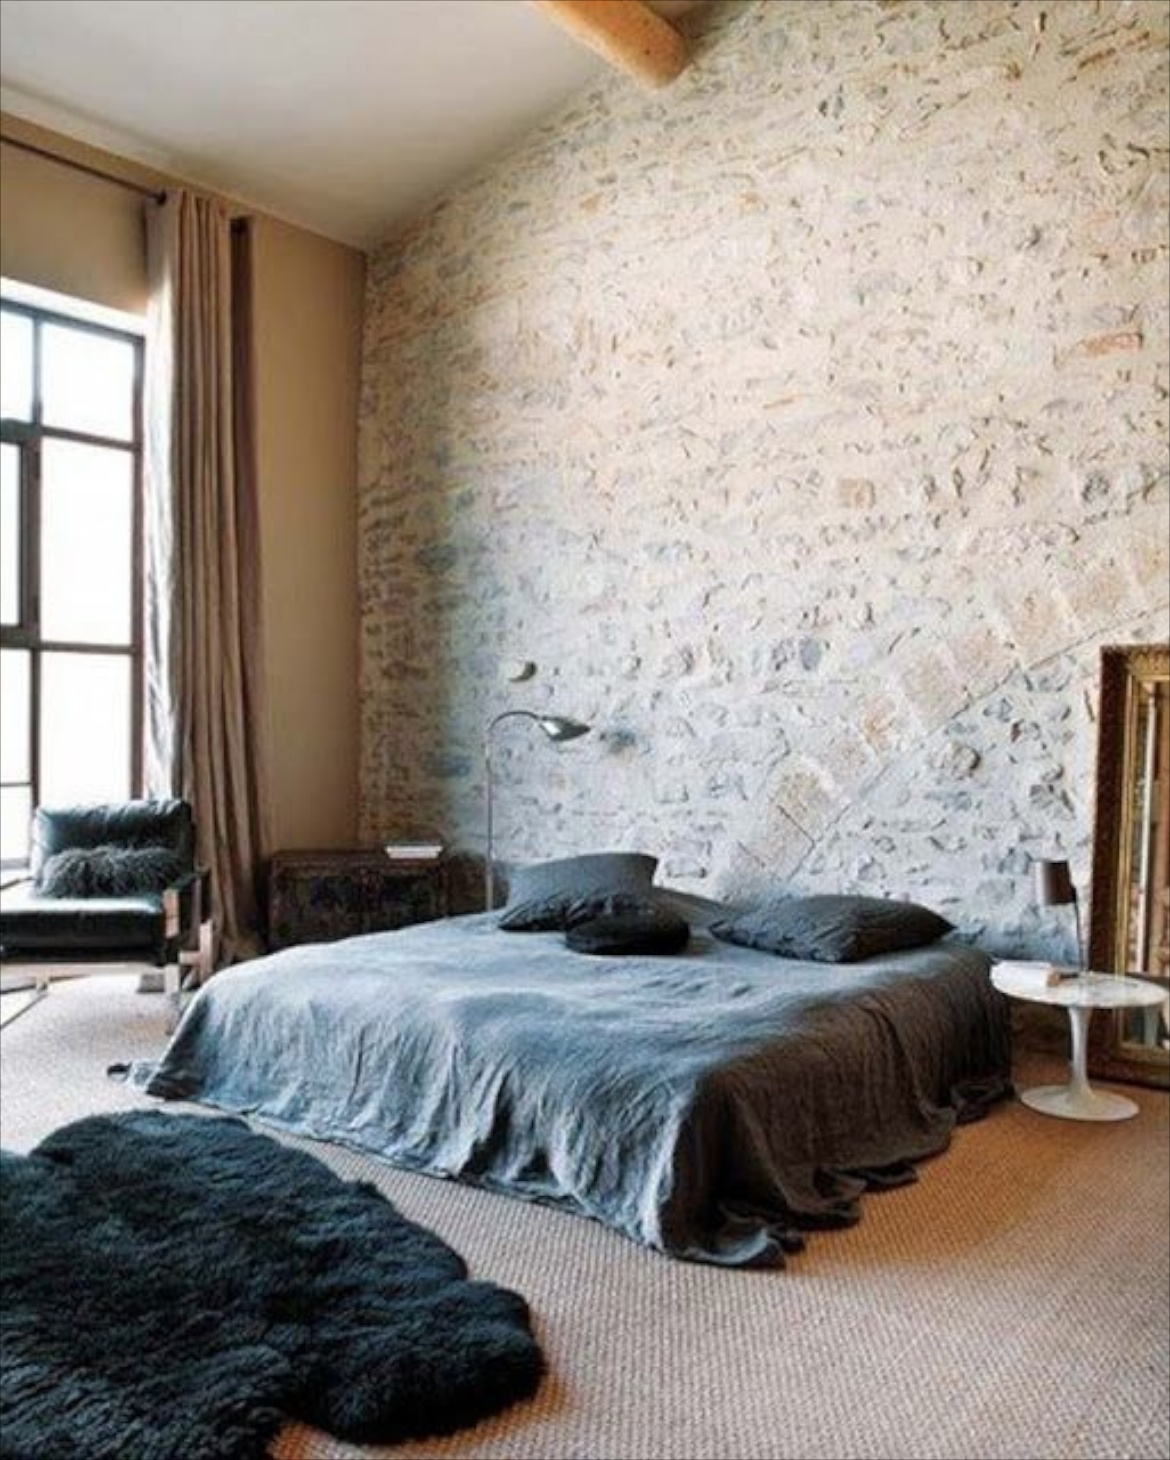 Image Via Pixshark Mountain Inspired Rustic Bedrooms That Have A Relaxing Feel